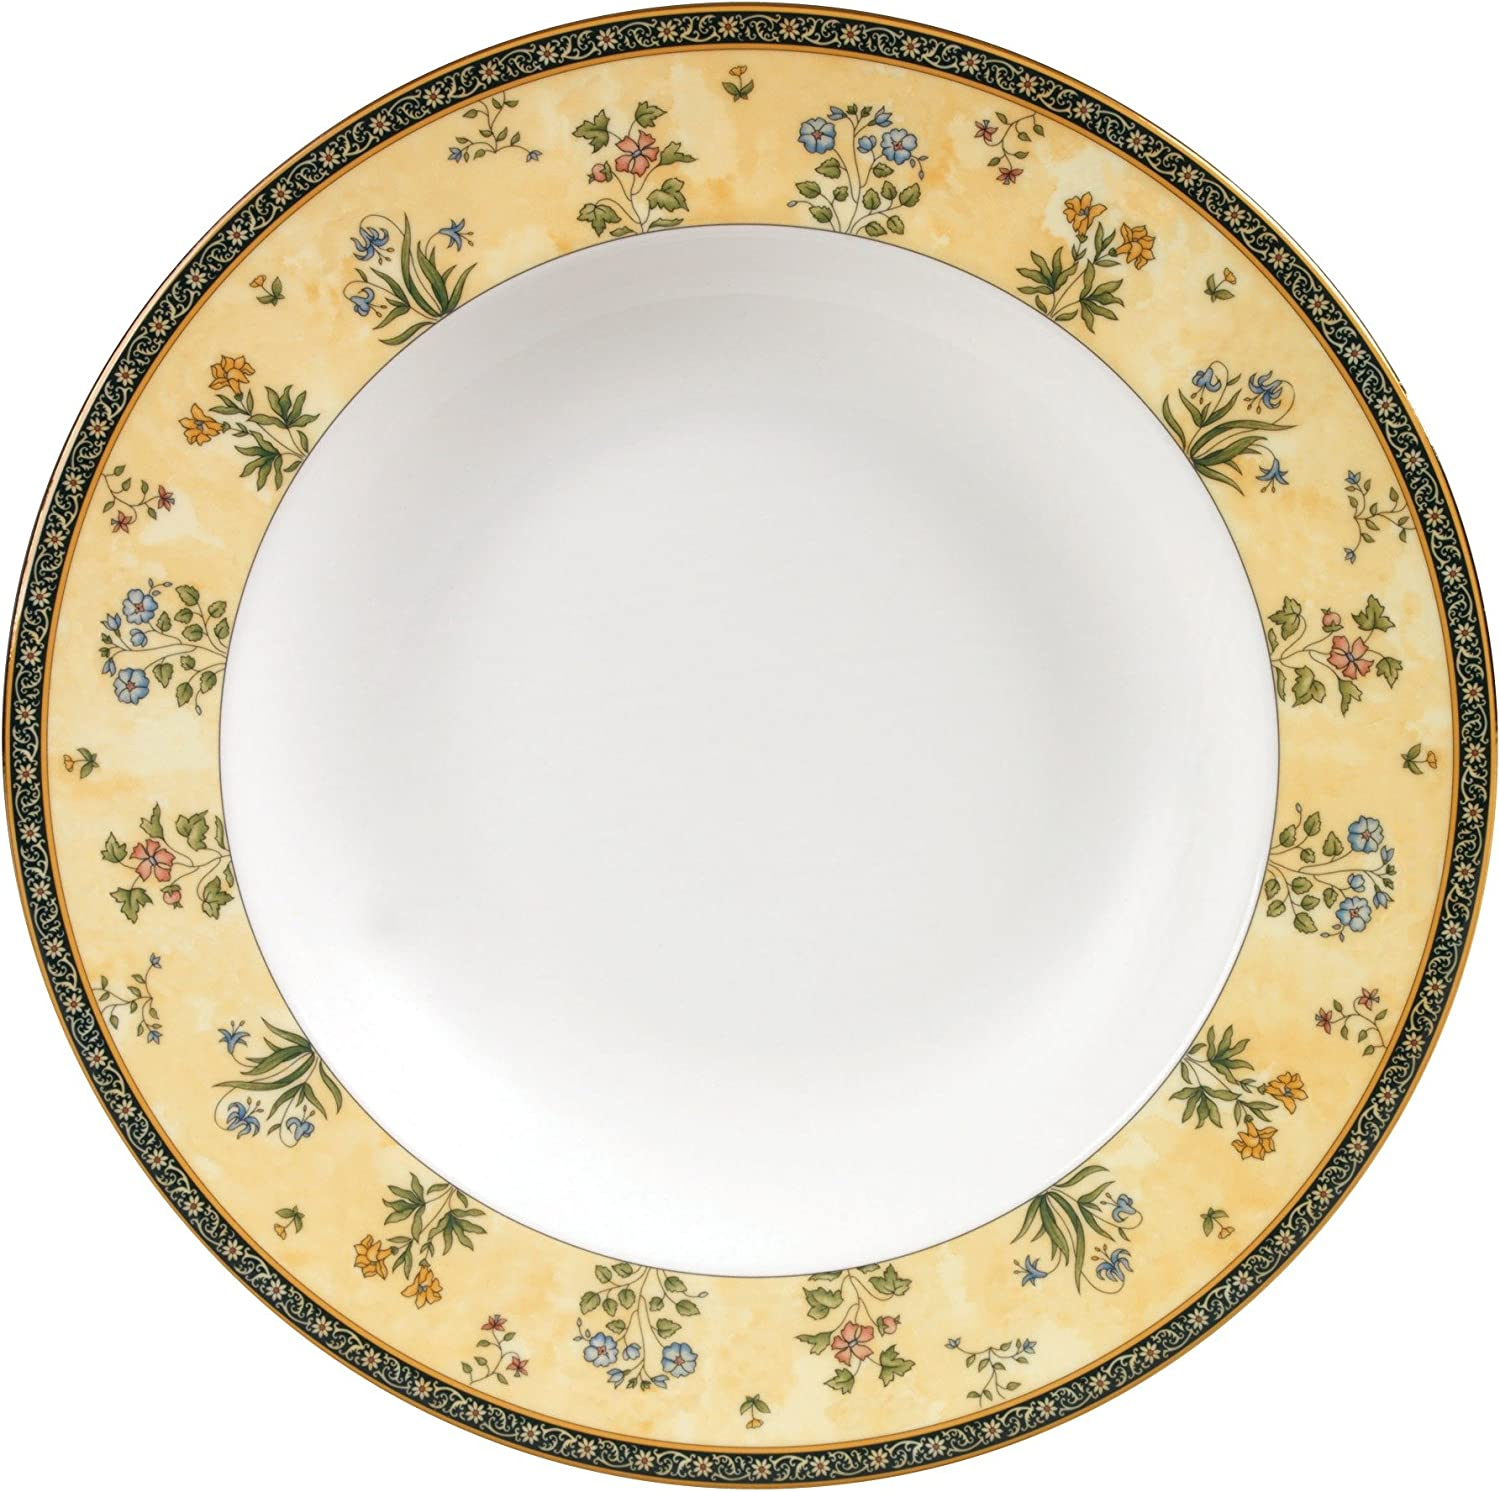 Our shop most popular Wedgwood India 8-Inch Rim Popular products Soup Bowl